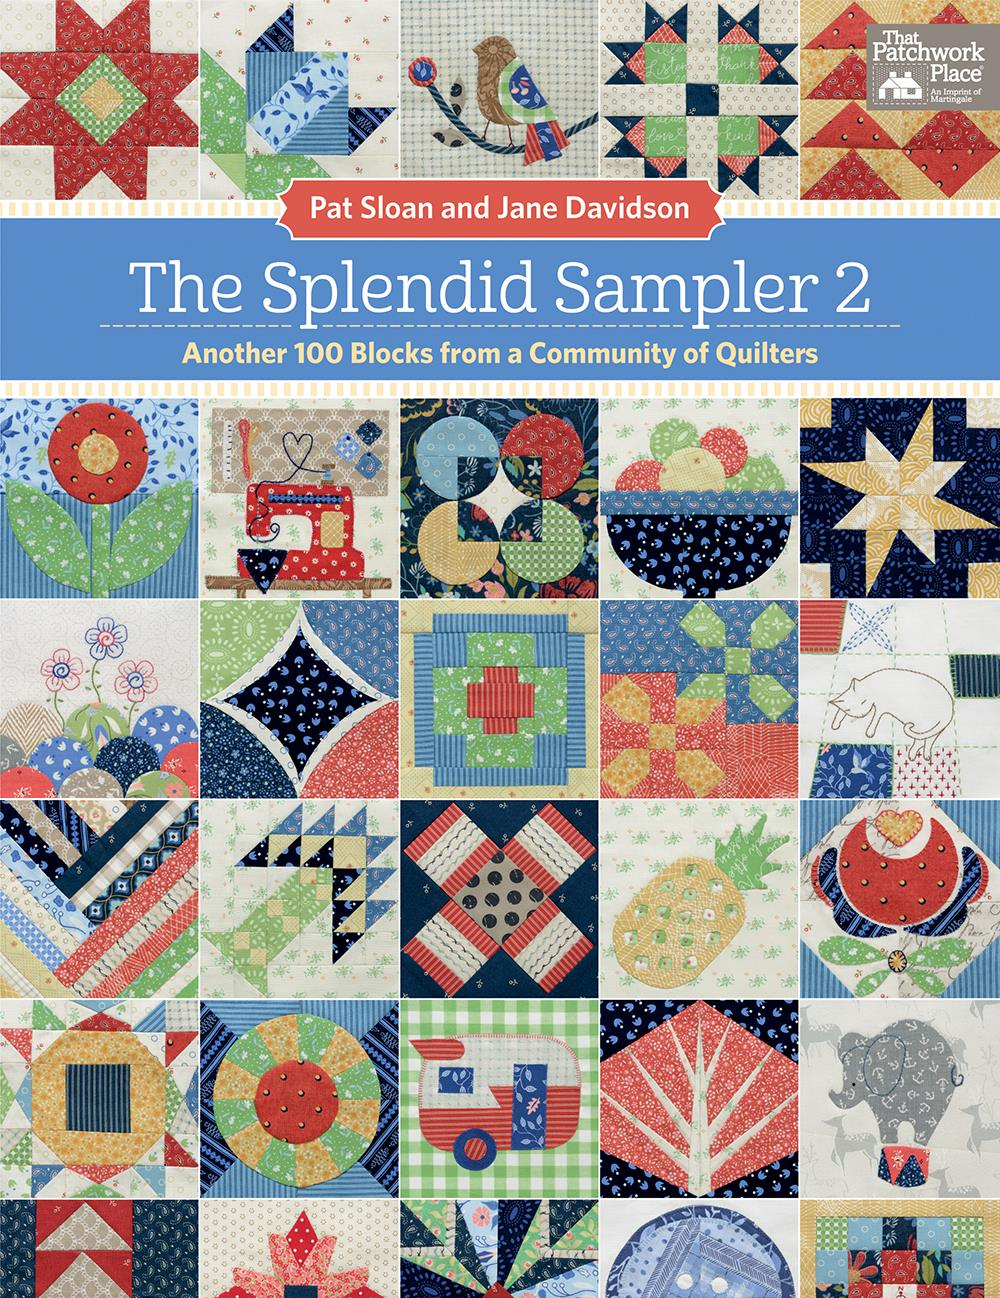 ellis & higgs in The Splendid Sampler 2